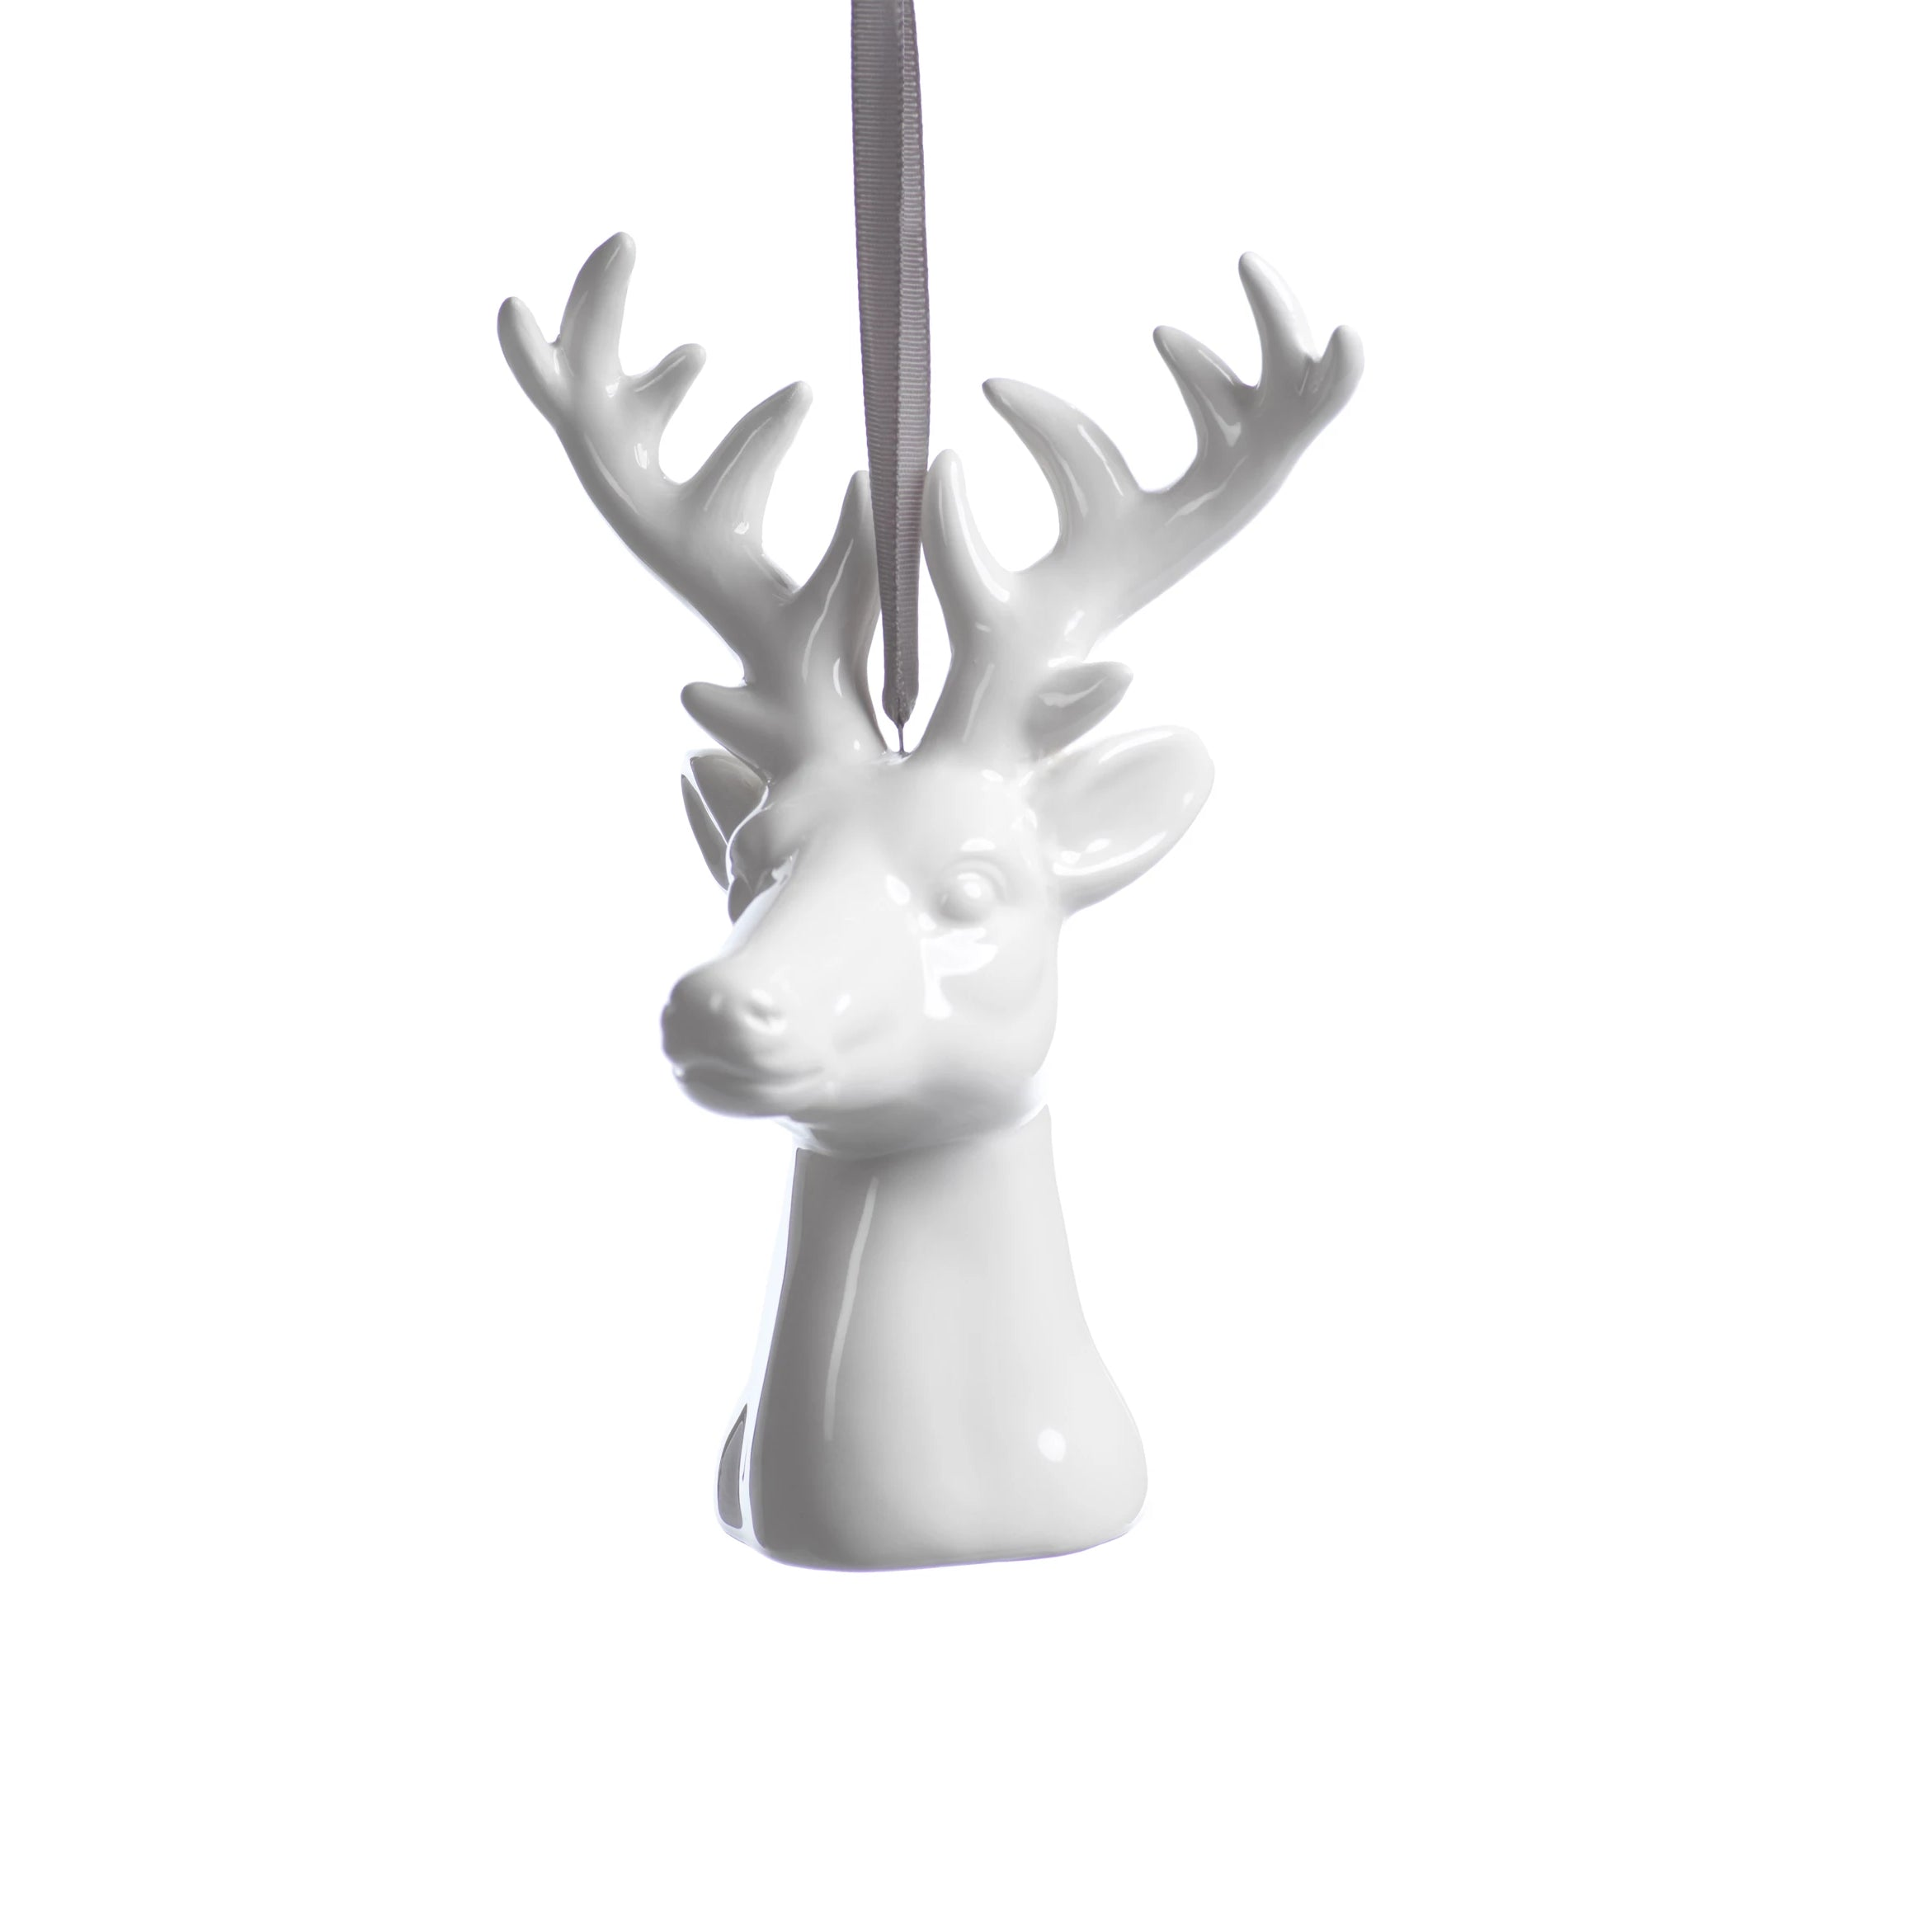 Ceramic White Reindeer Ornament - Set of 4 - CARLYLE AVENUE